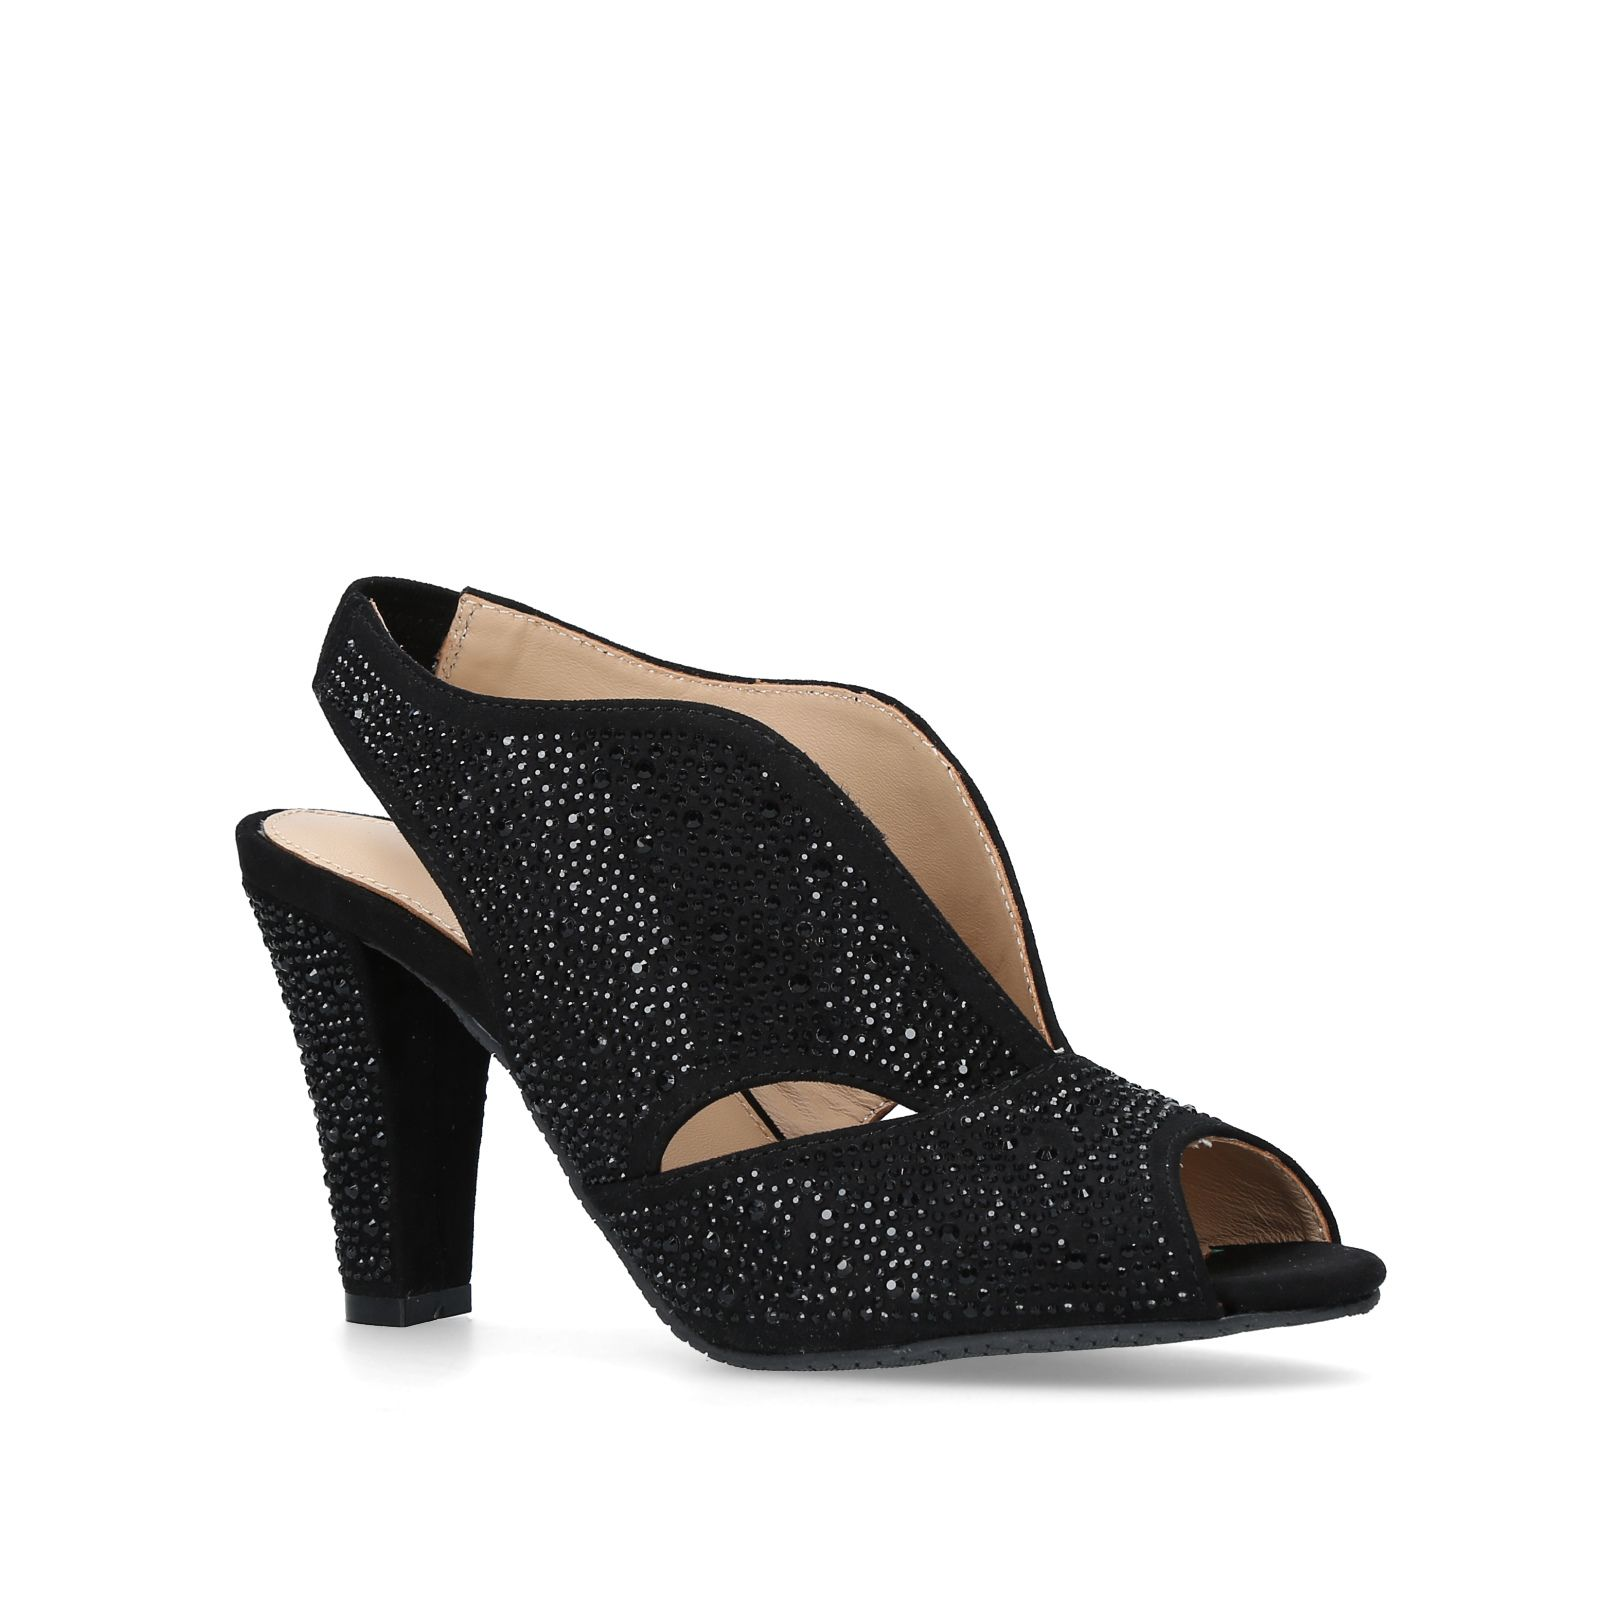 Carvela Comfort Arabella Courts, Black